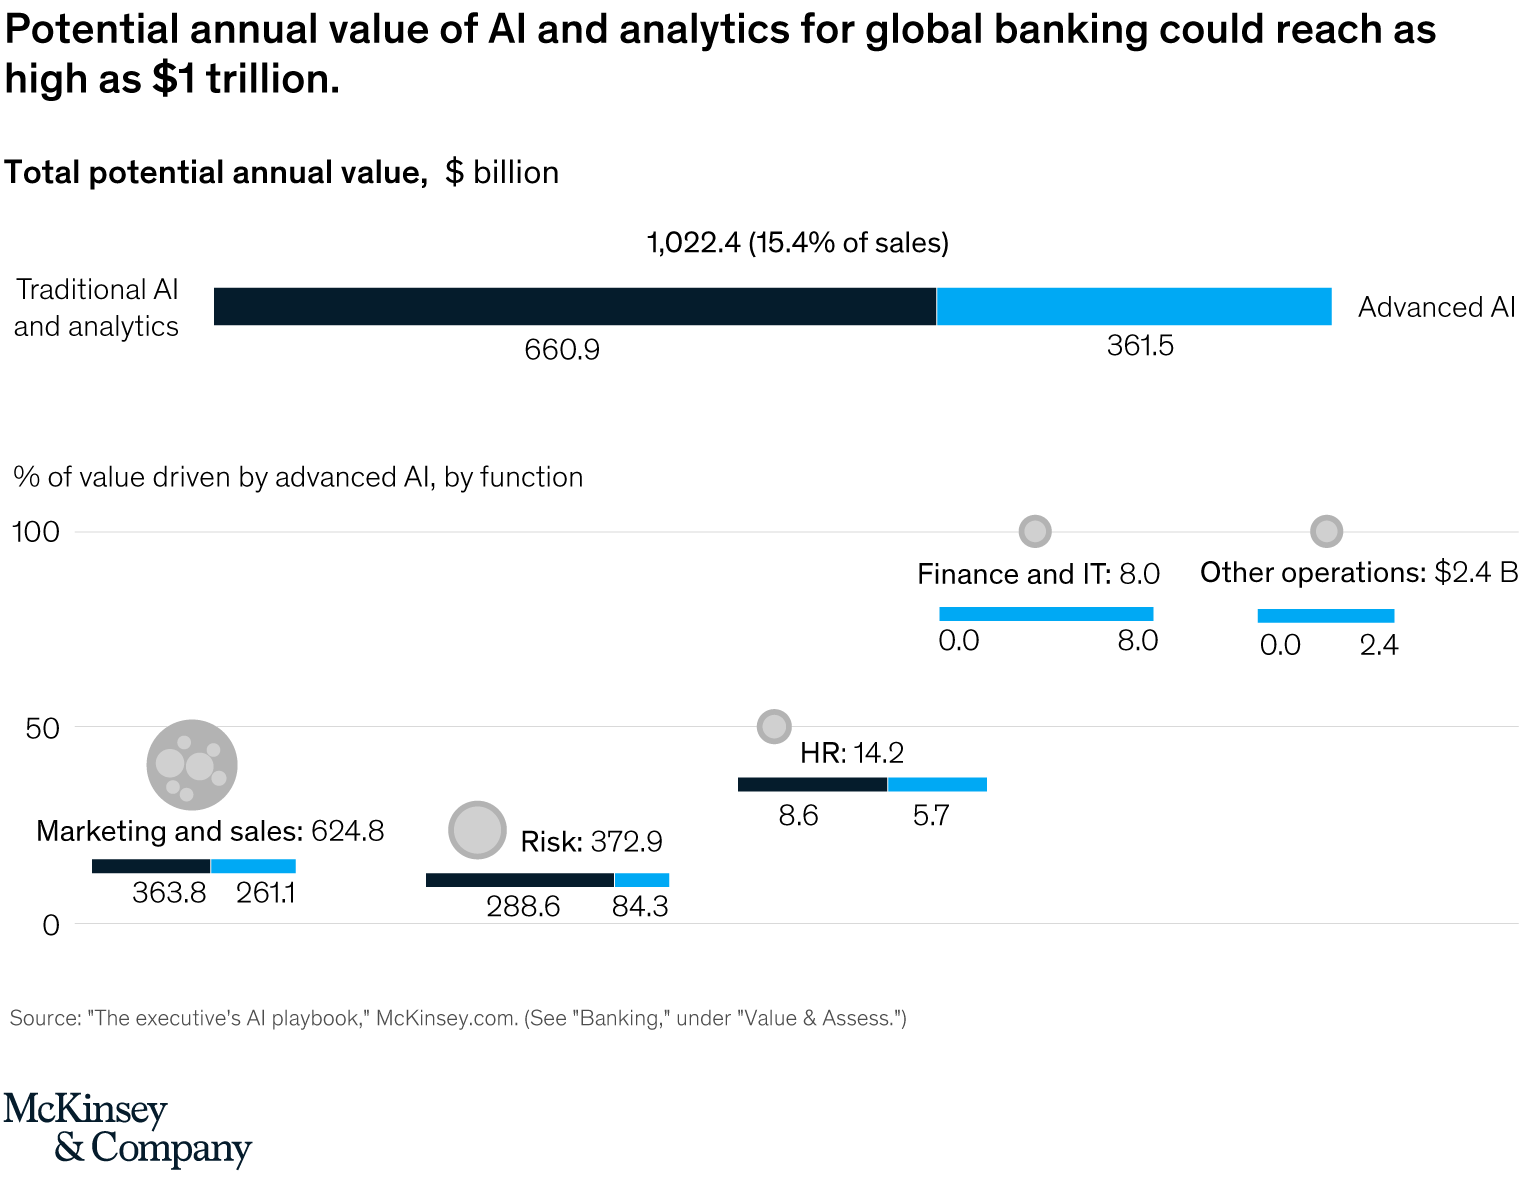 Total potential annual value, $ billion, Source- The executive's AI playbook, McKinsey.com